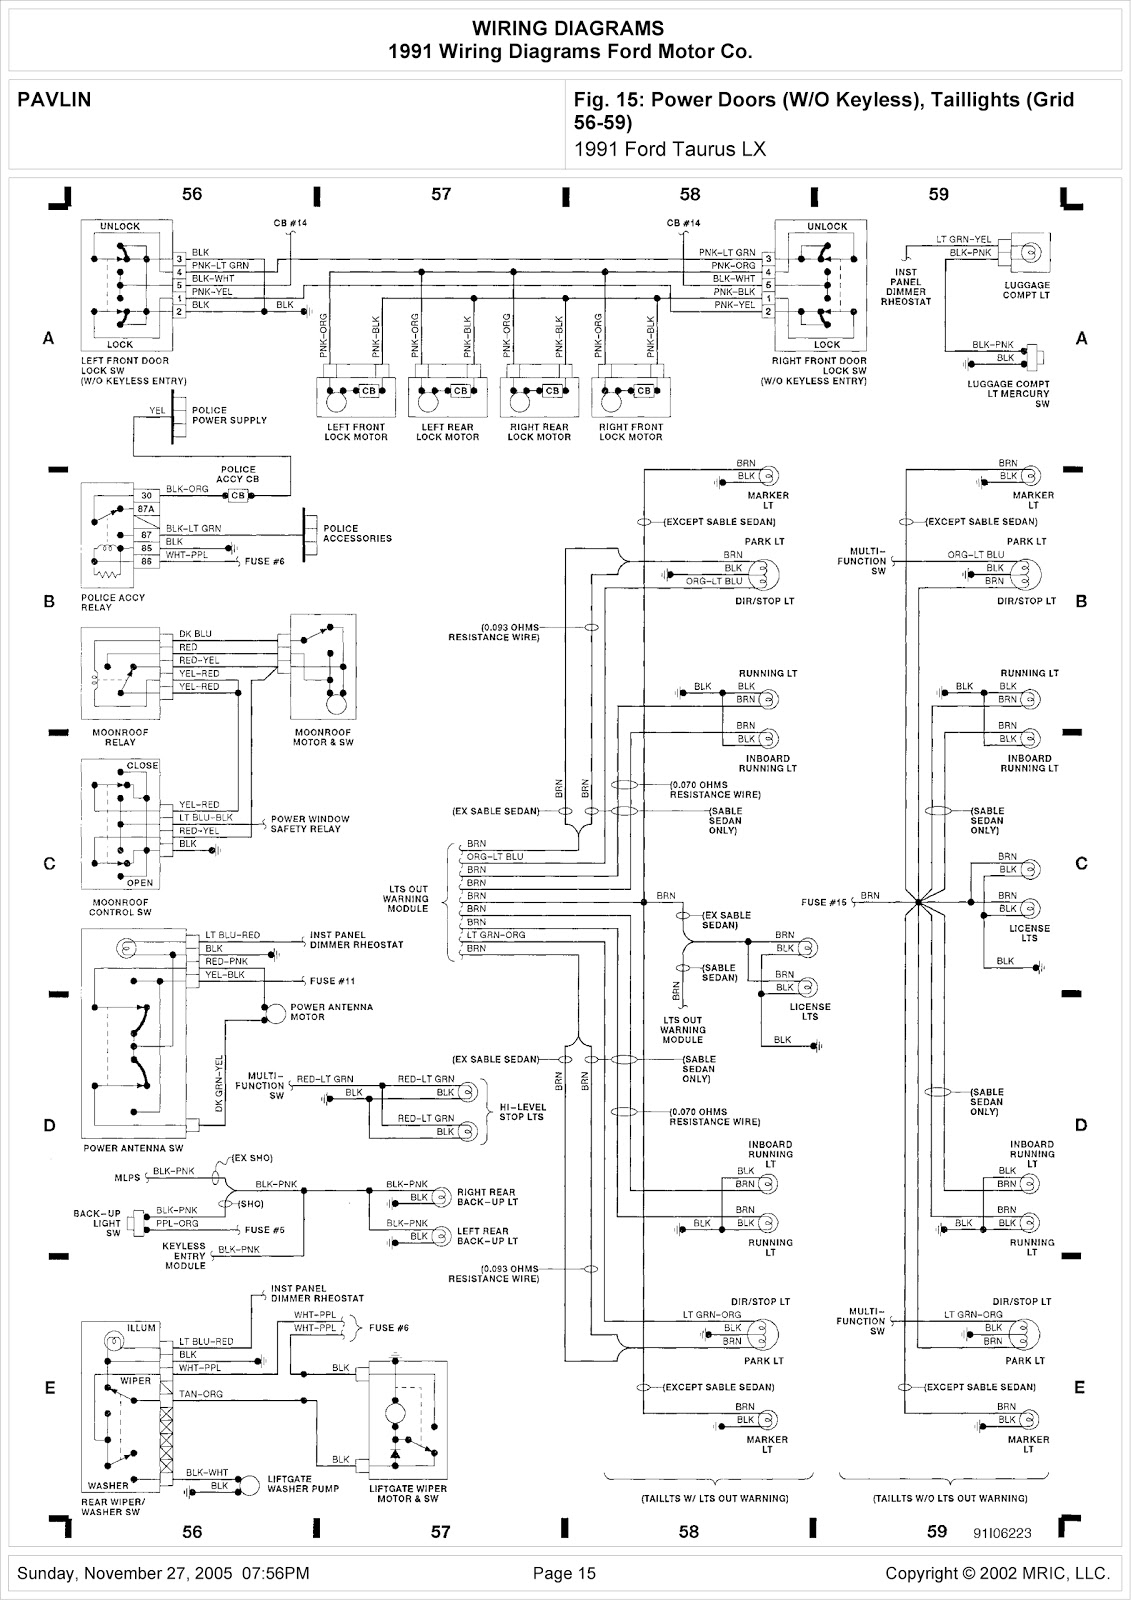 1991 Ford Taurus Lx System Wiring Diagram Power Doors